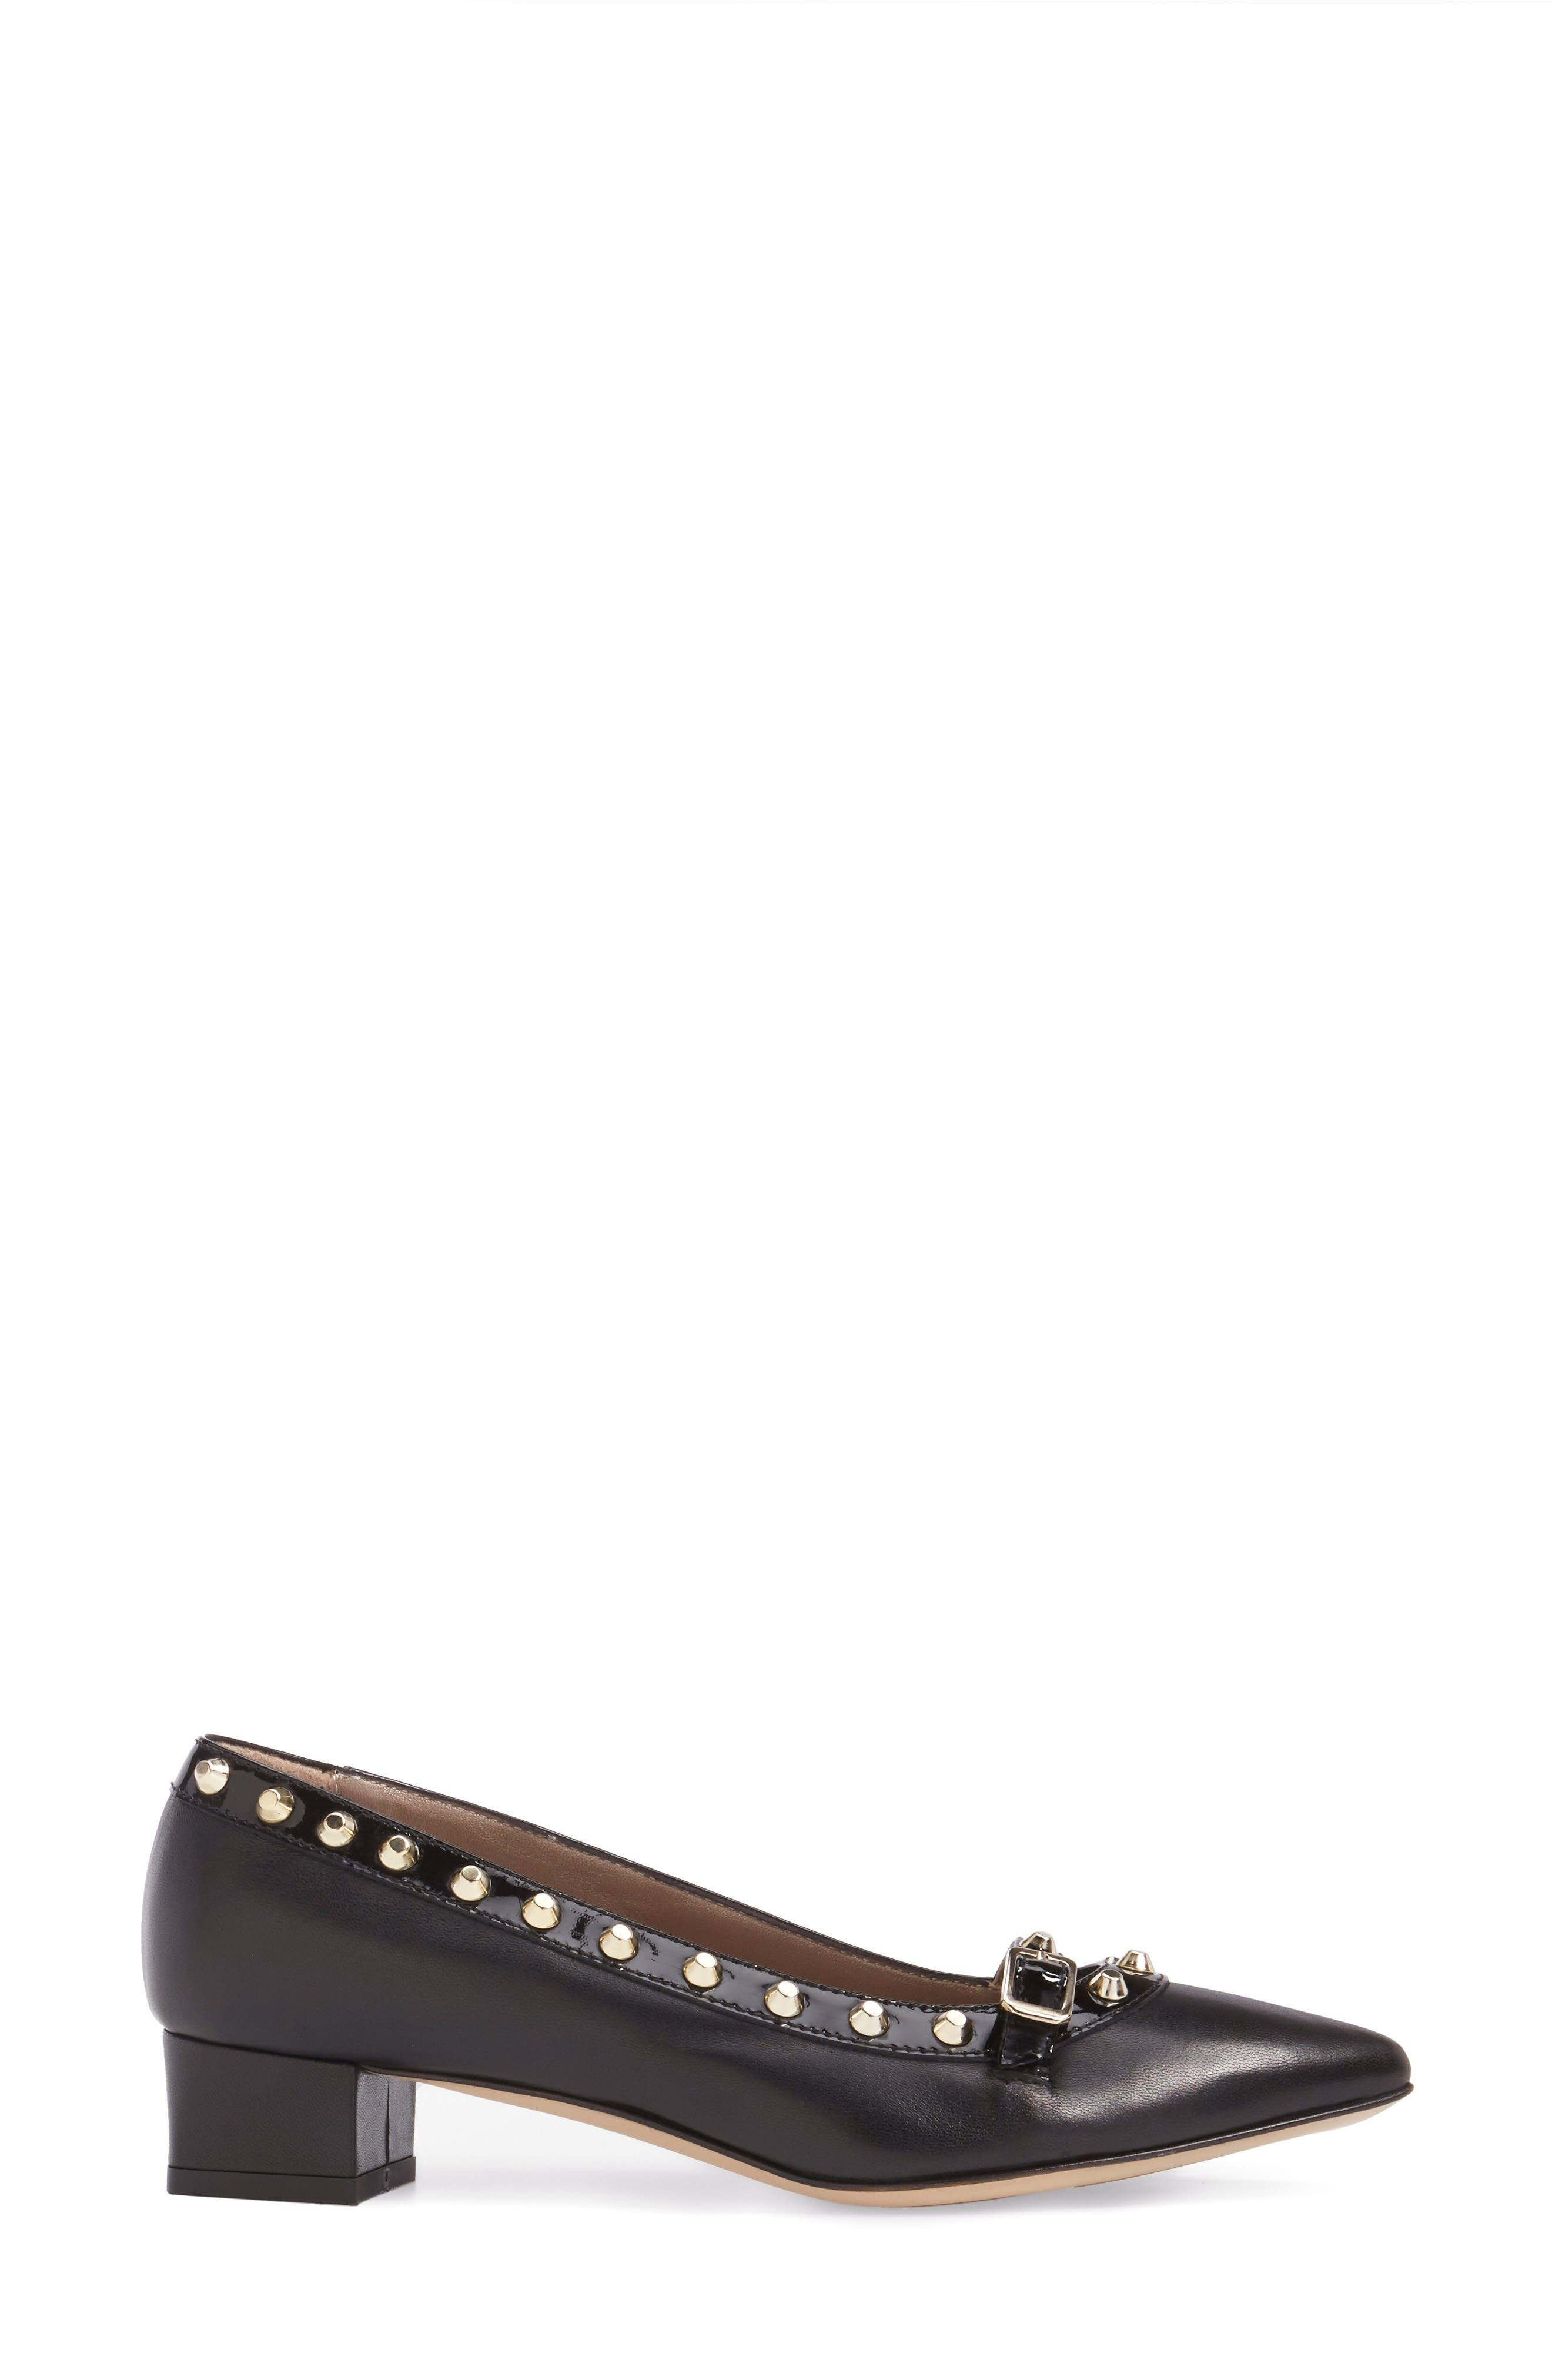 Studded Mary Jane Pump,                             Alternate thumbnail 3, color,                             Black Leather